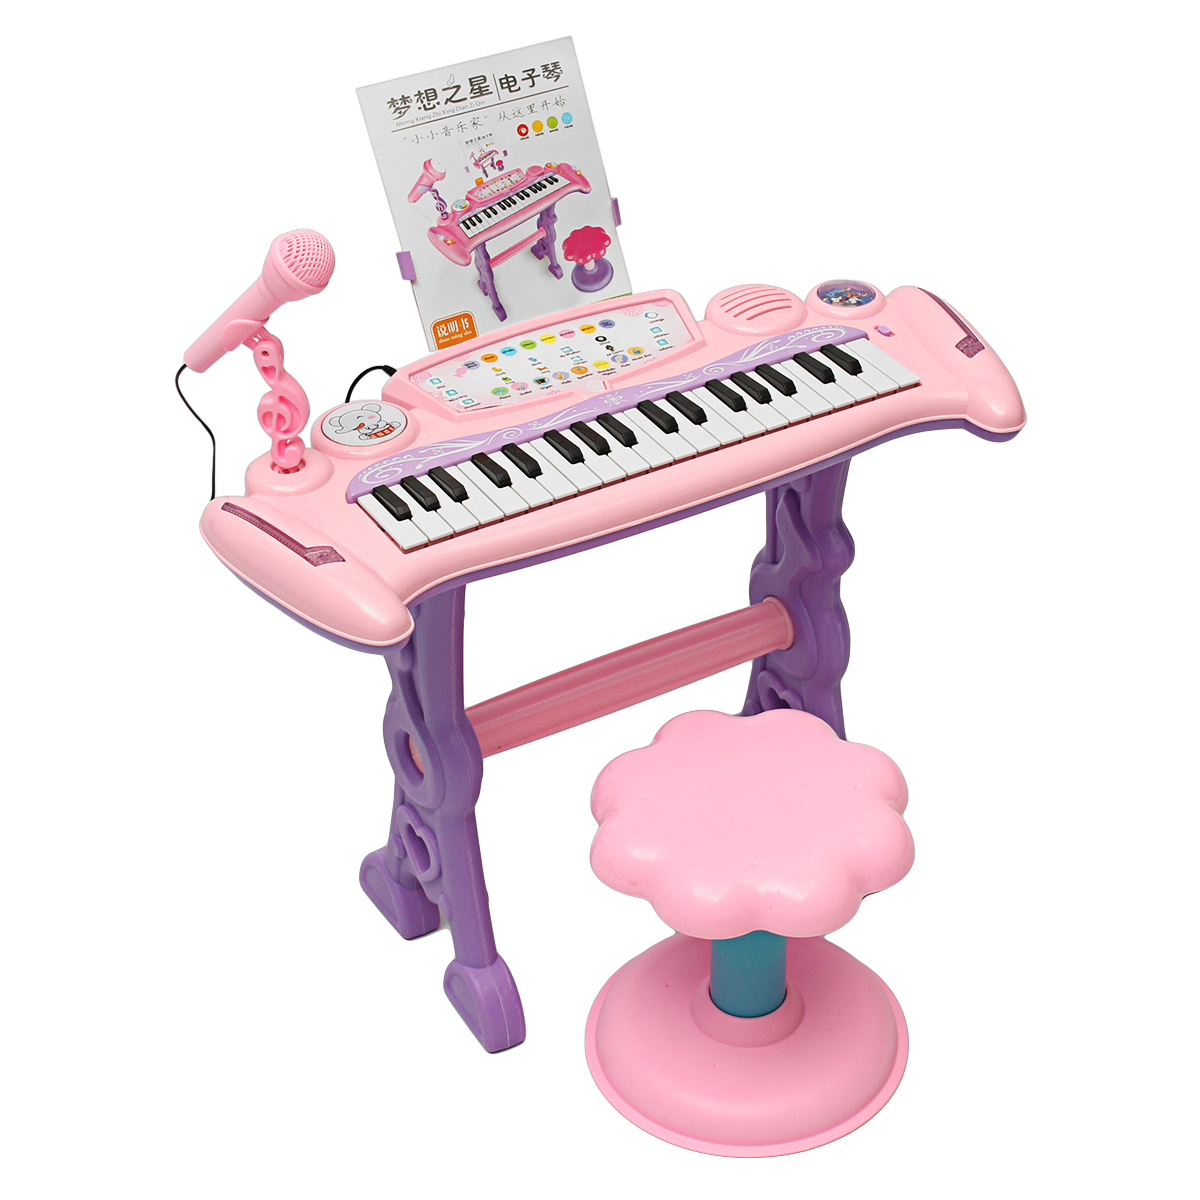 Musical Kids Electronic Keyboard 37 Key Piano Organ Toy Microphone Music with Chair For... by